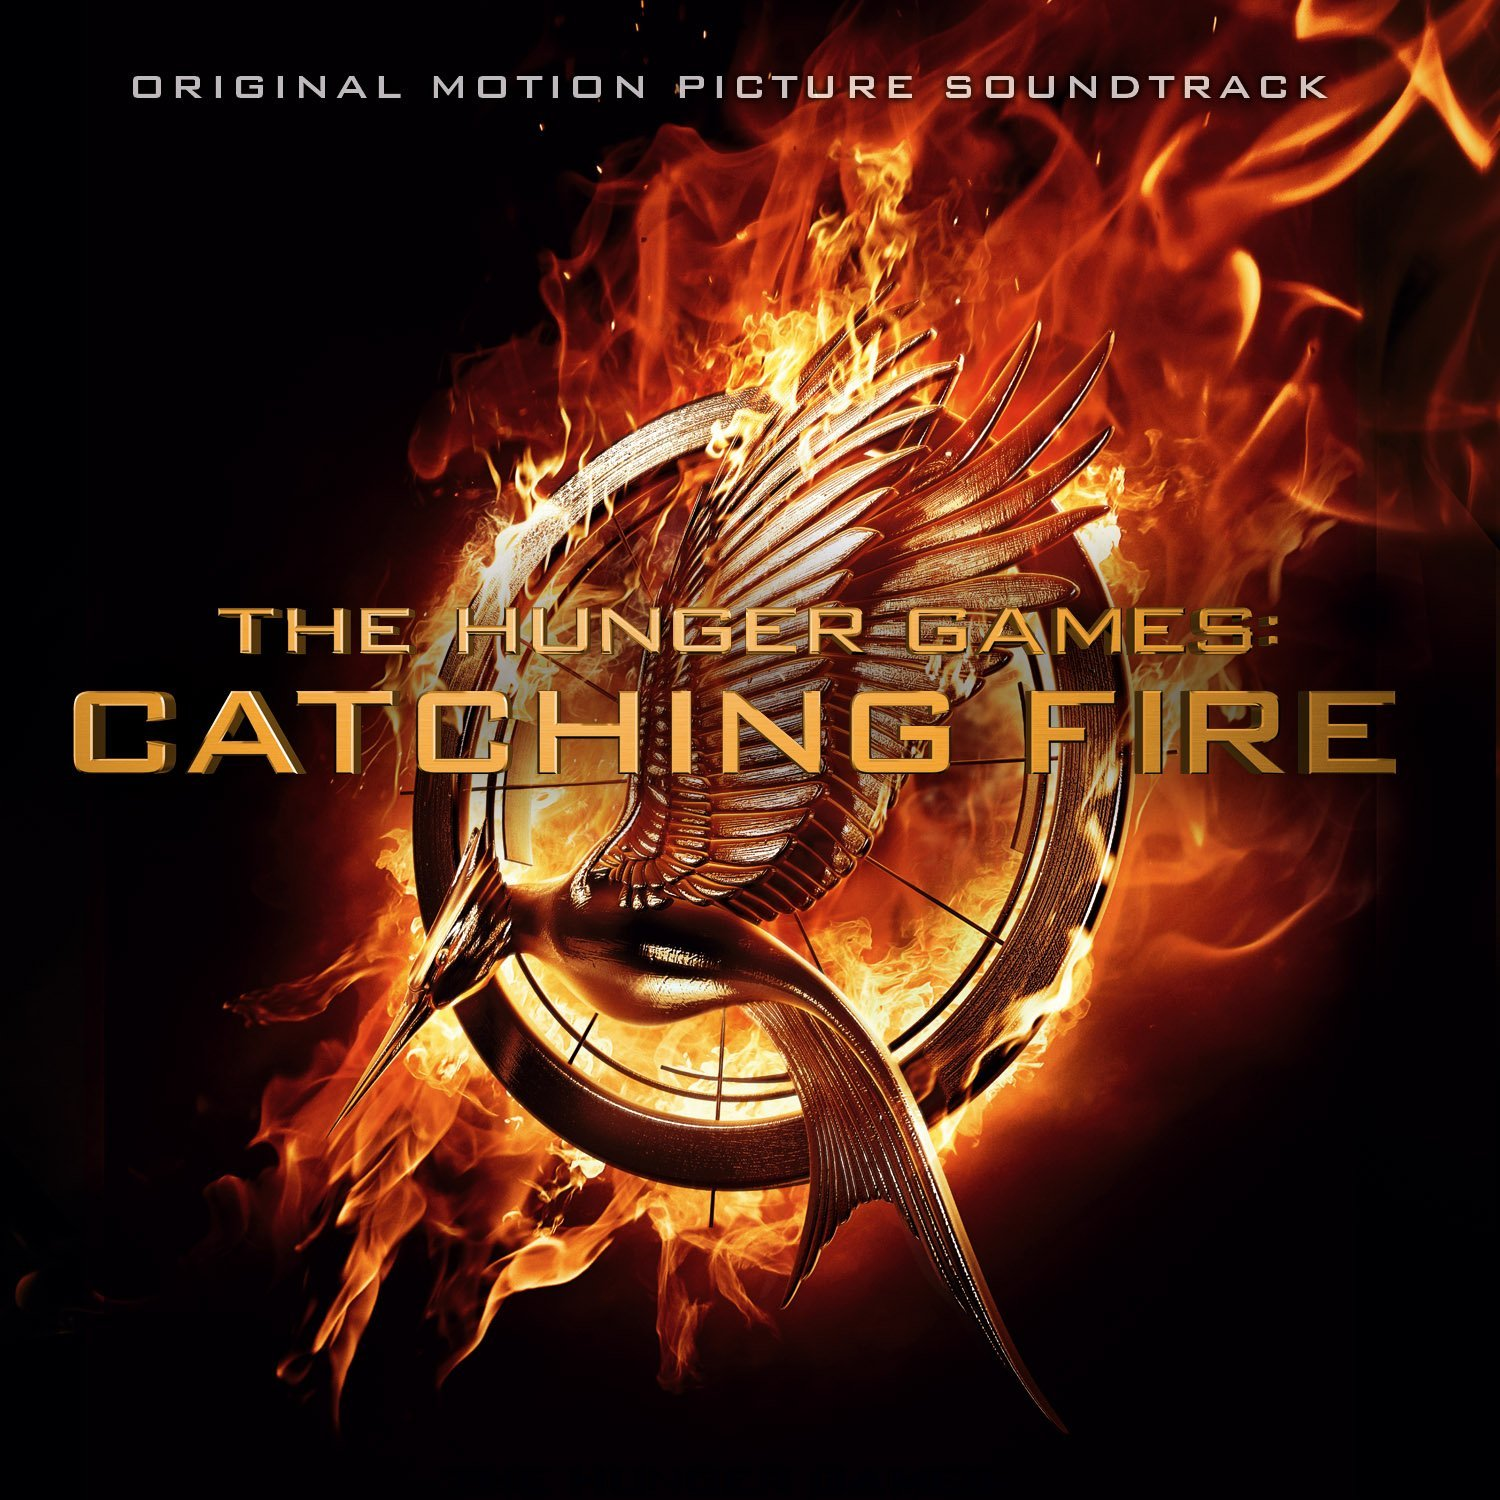 image - catching fire score cover | the hunger games wiki